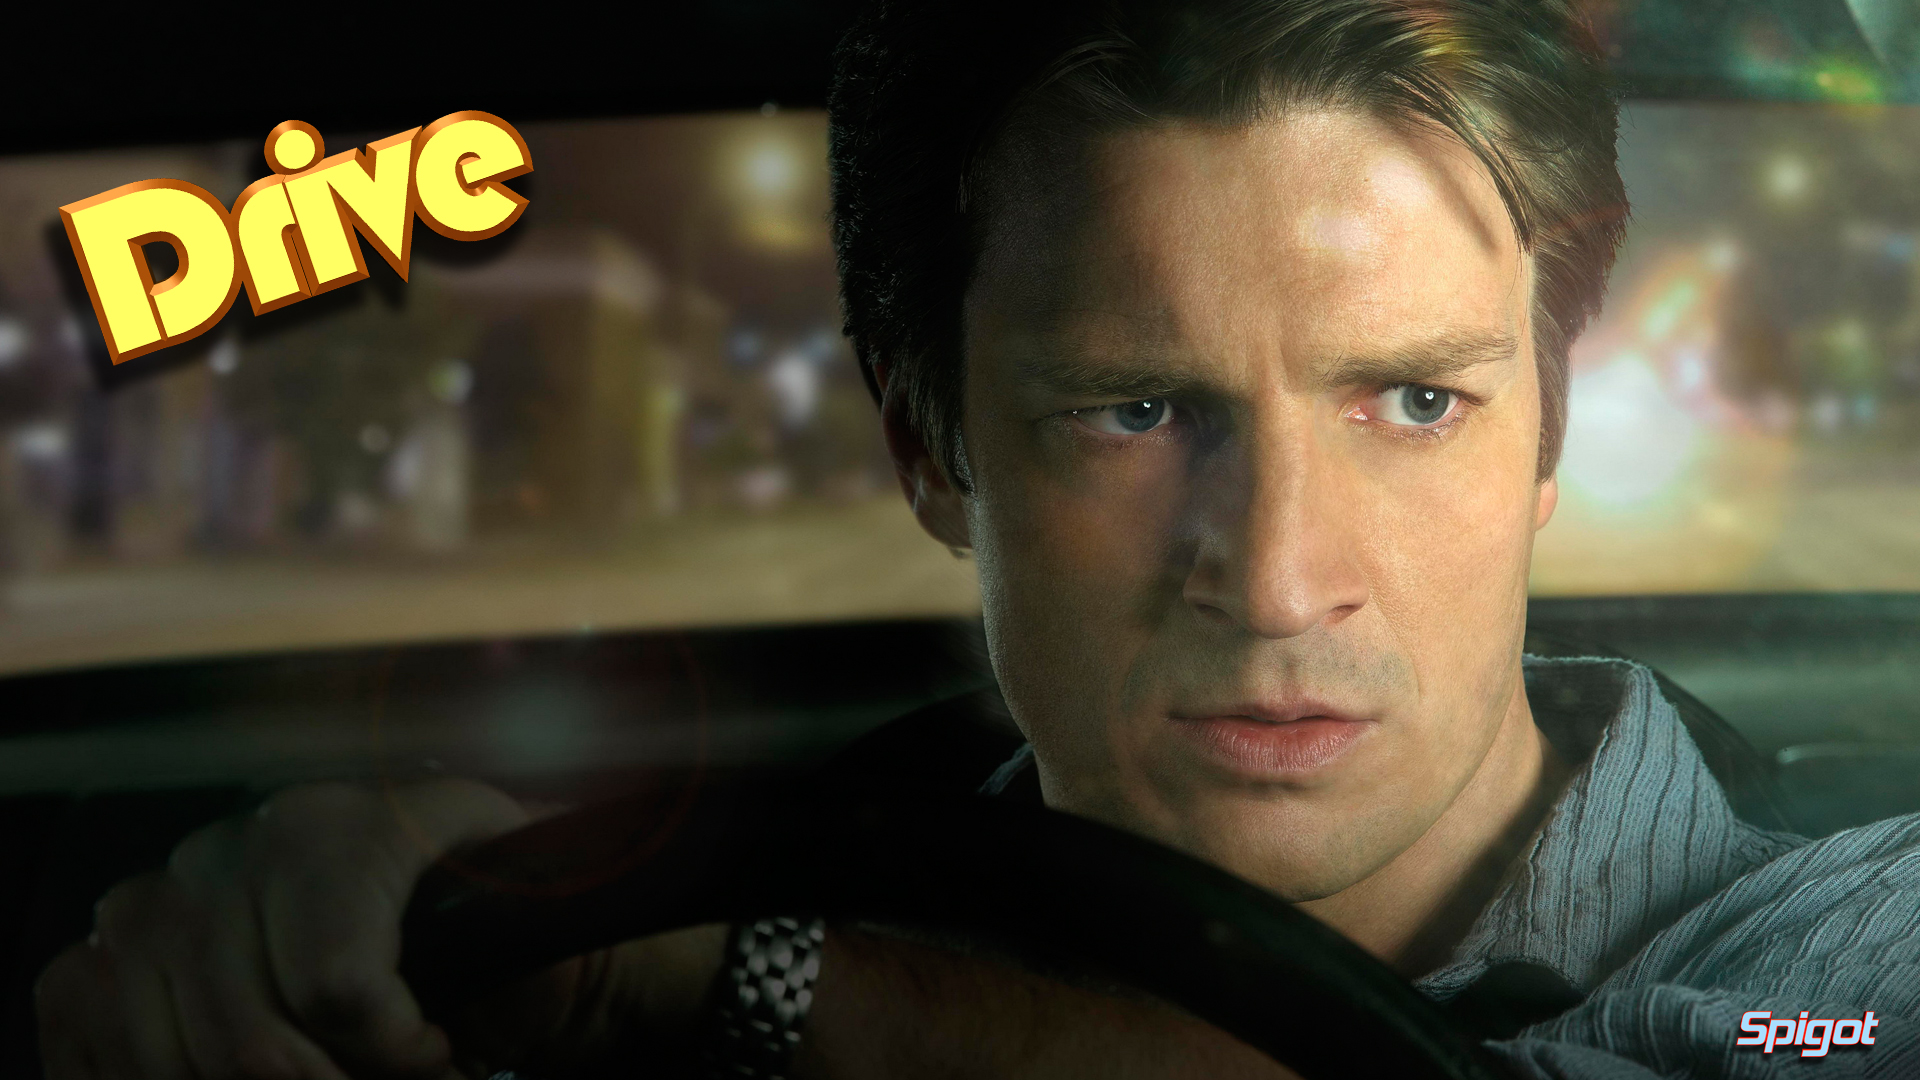 Nathan Fillion Drive wallpaper - 993803